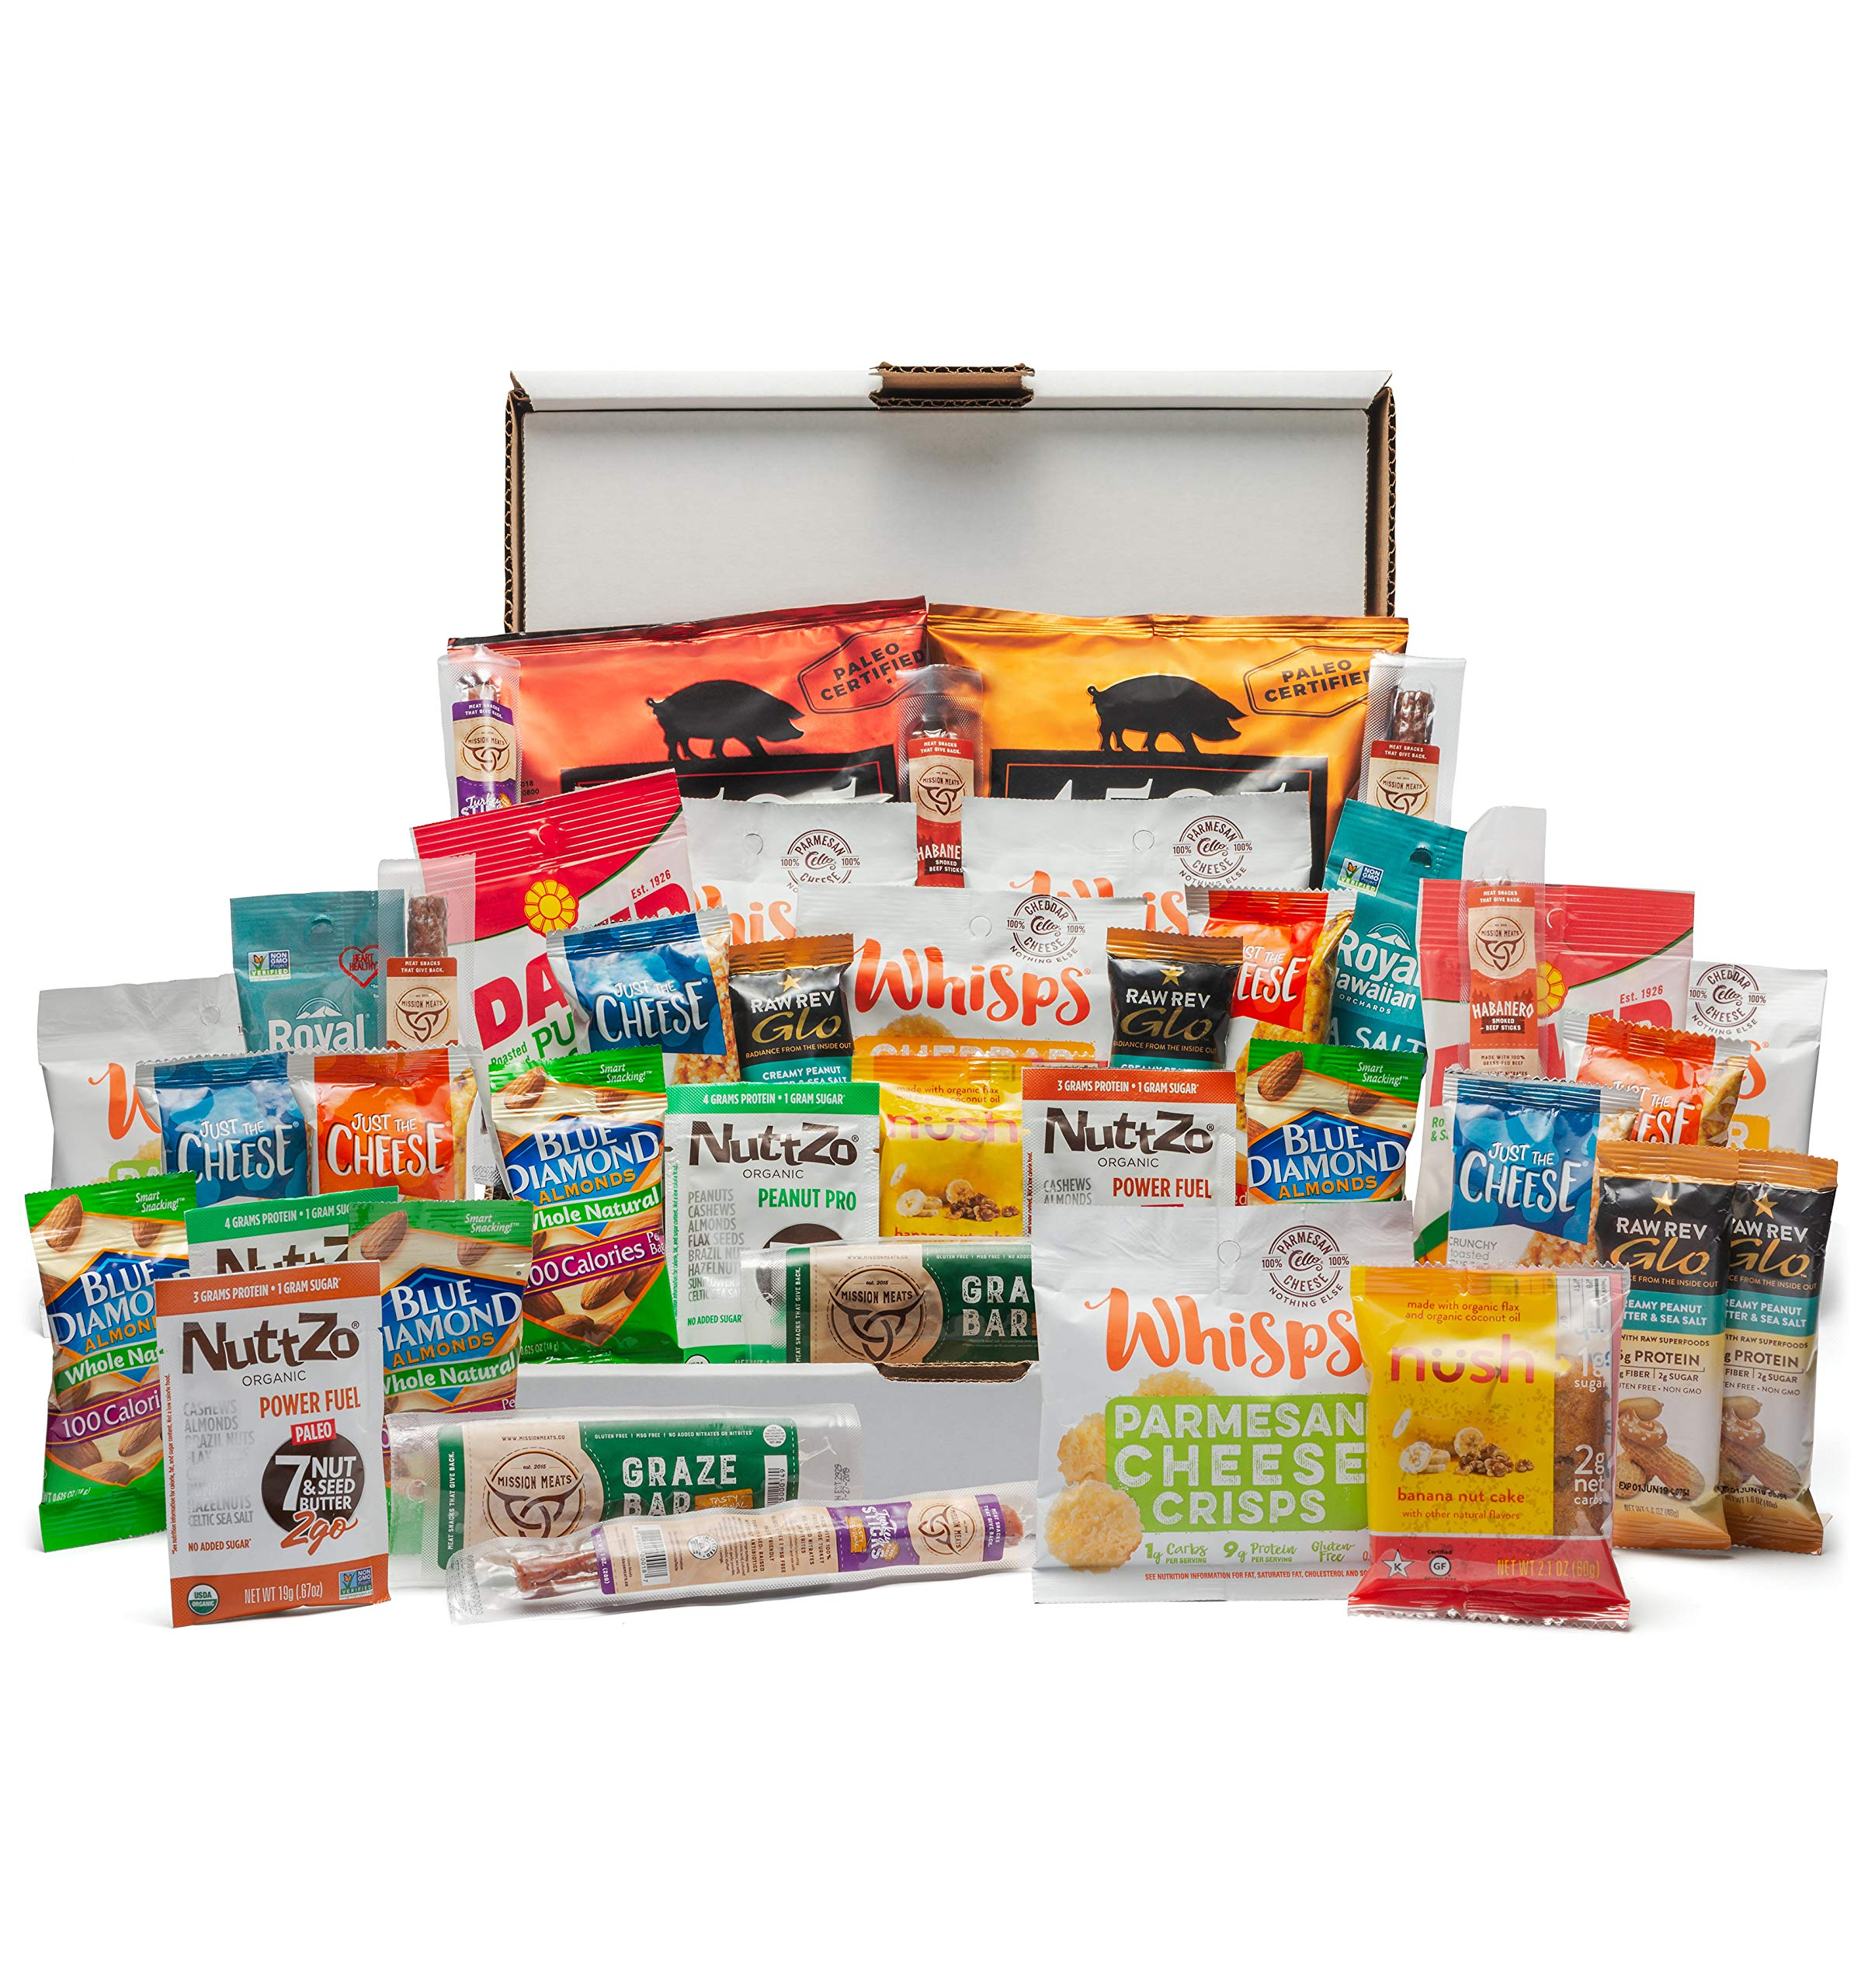 Keto Snack Box (40 Count)-Ultra Low Carb Snacks-Ketogenic Friendly, Gluten Free, Low Sugar Healthy Keto Gift Box Variety Pack - Protein Bars, Pork Rinds, Cheese Crisps, Nut, Jerky, and More by Cedar Mountain Trade Co.